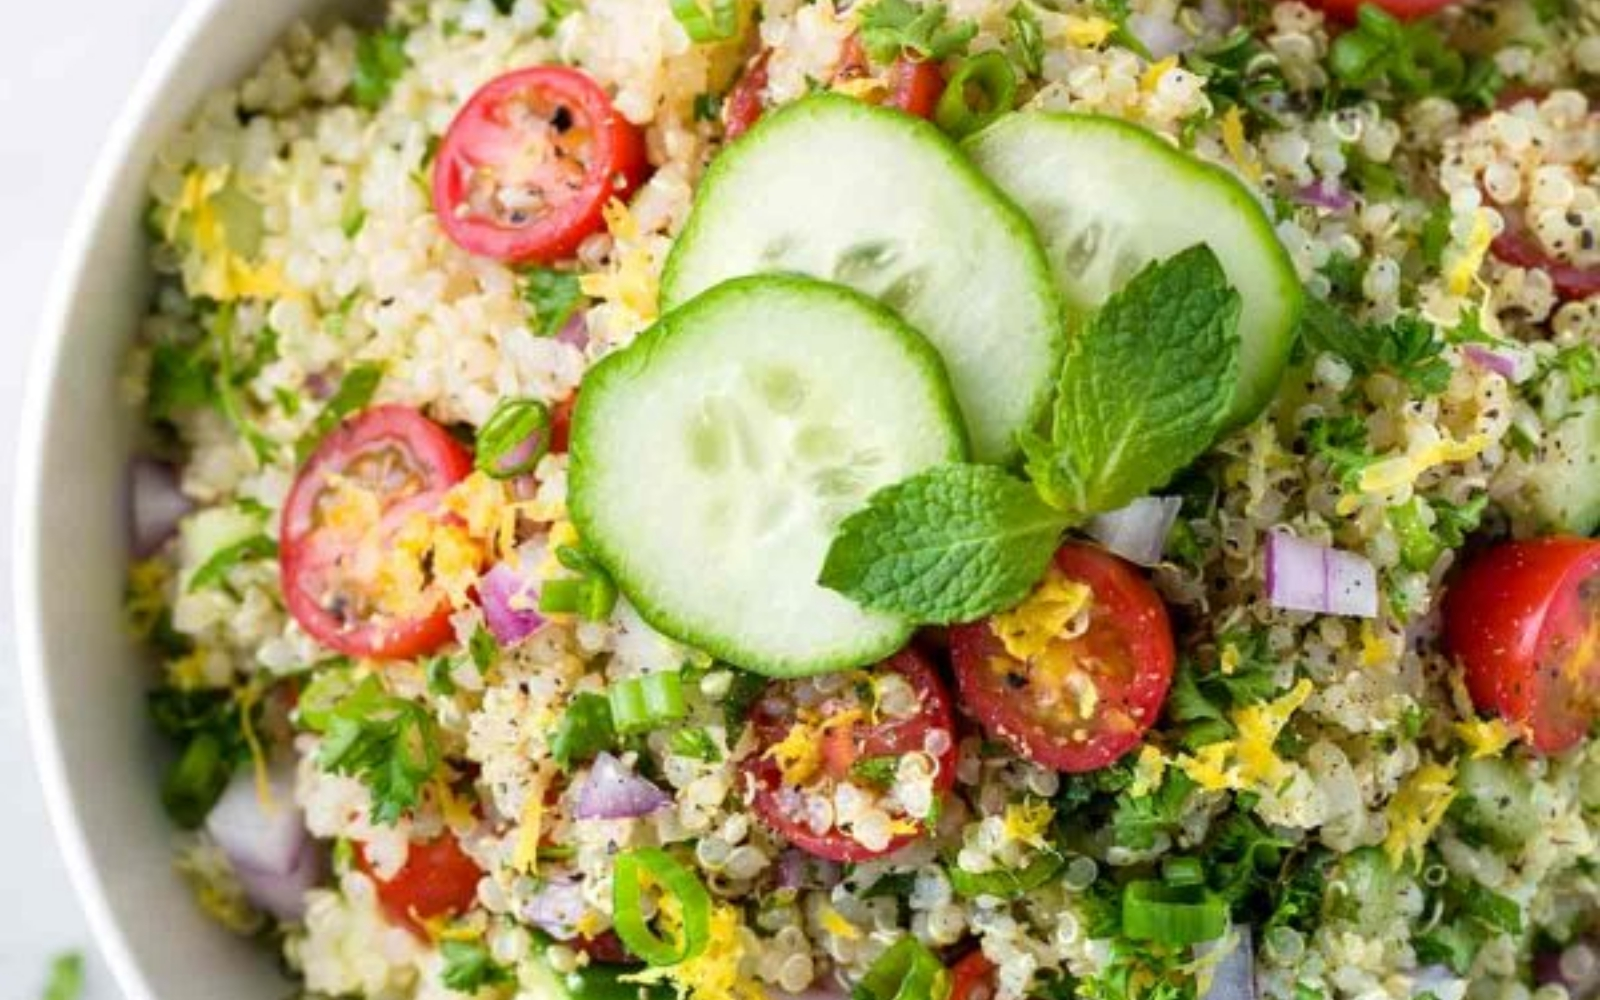 Vegan Quinoa Tabbouleh With Lemon Garlic Dressing [Vegan]